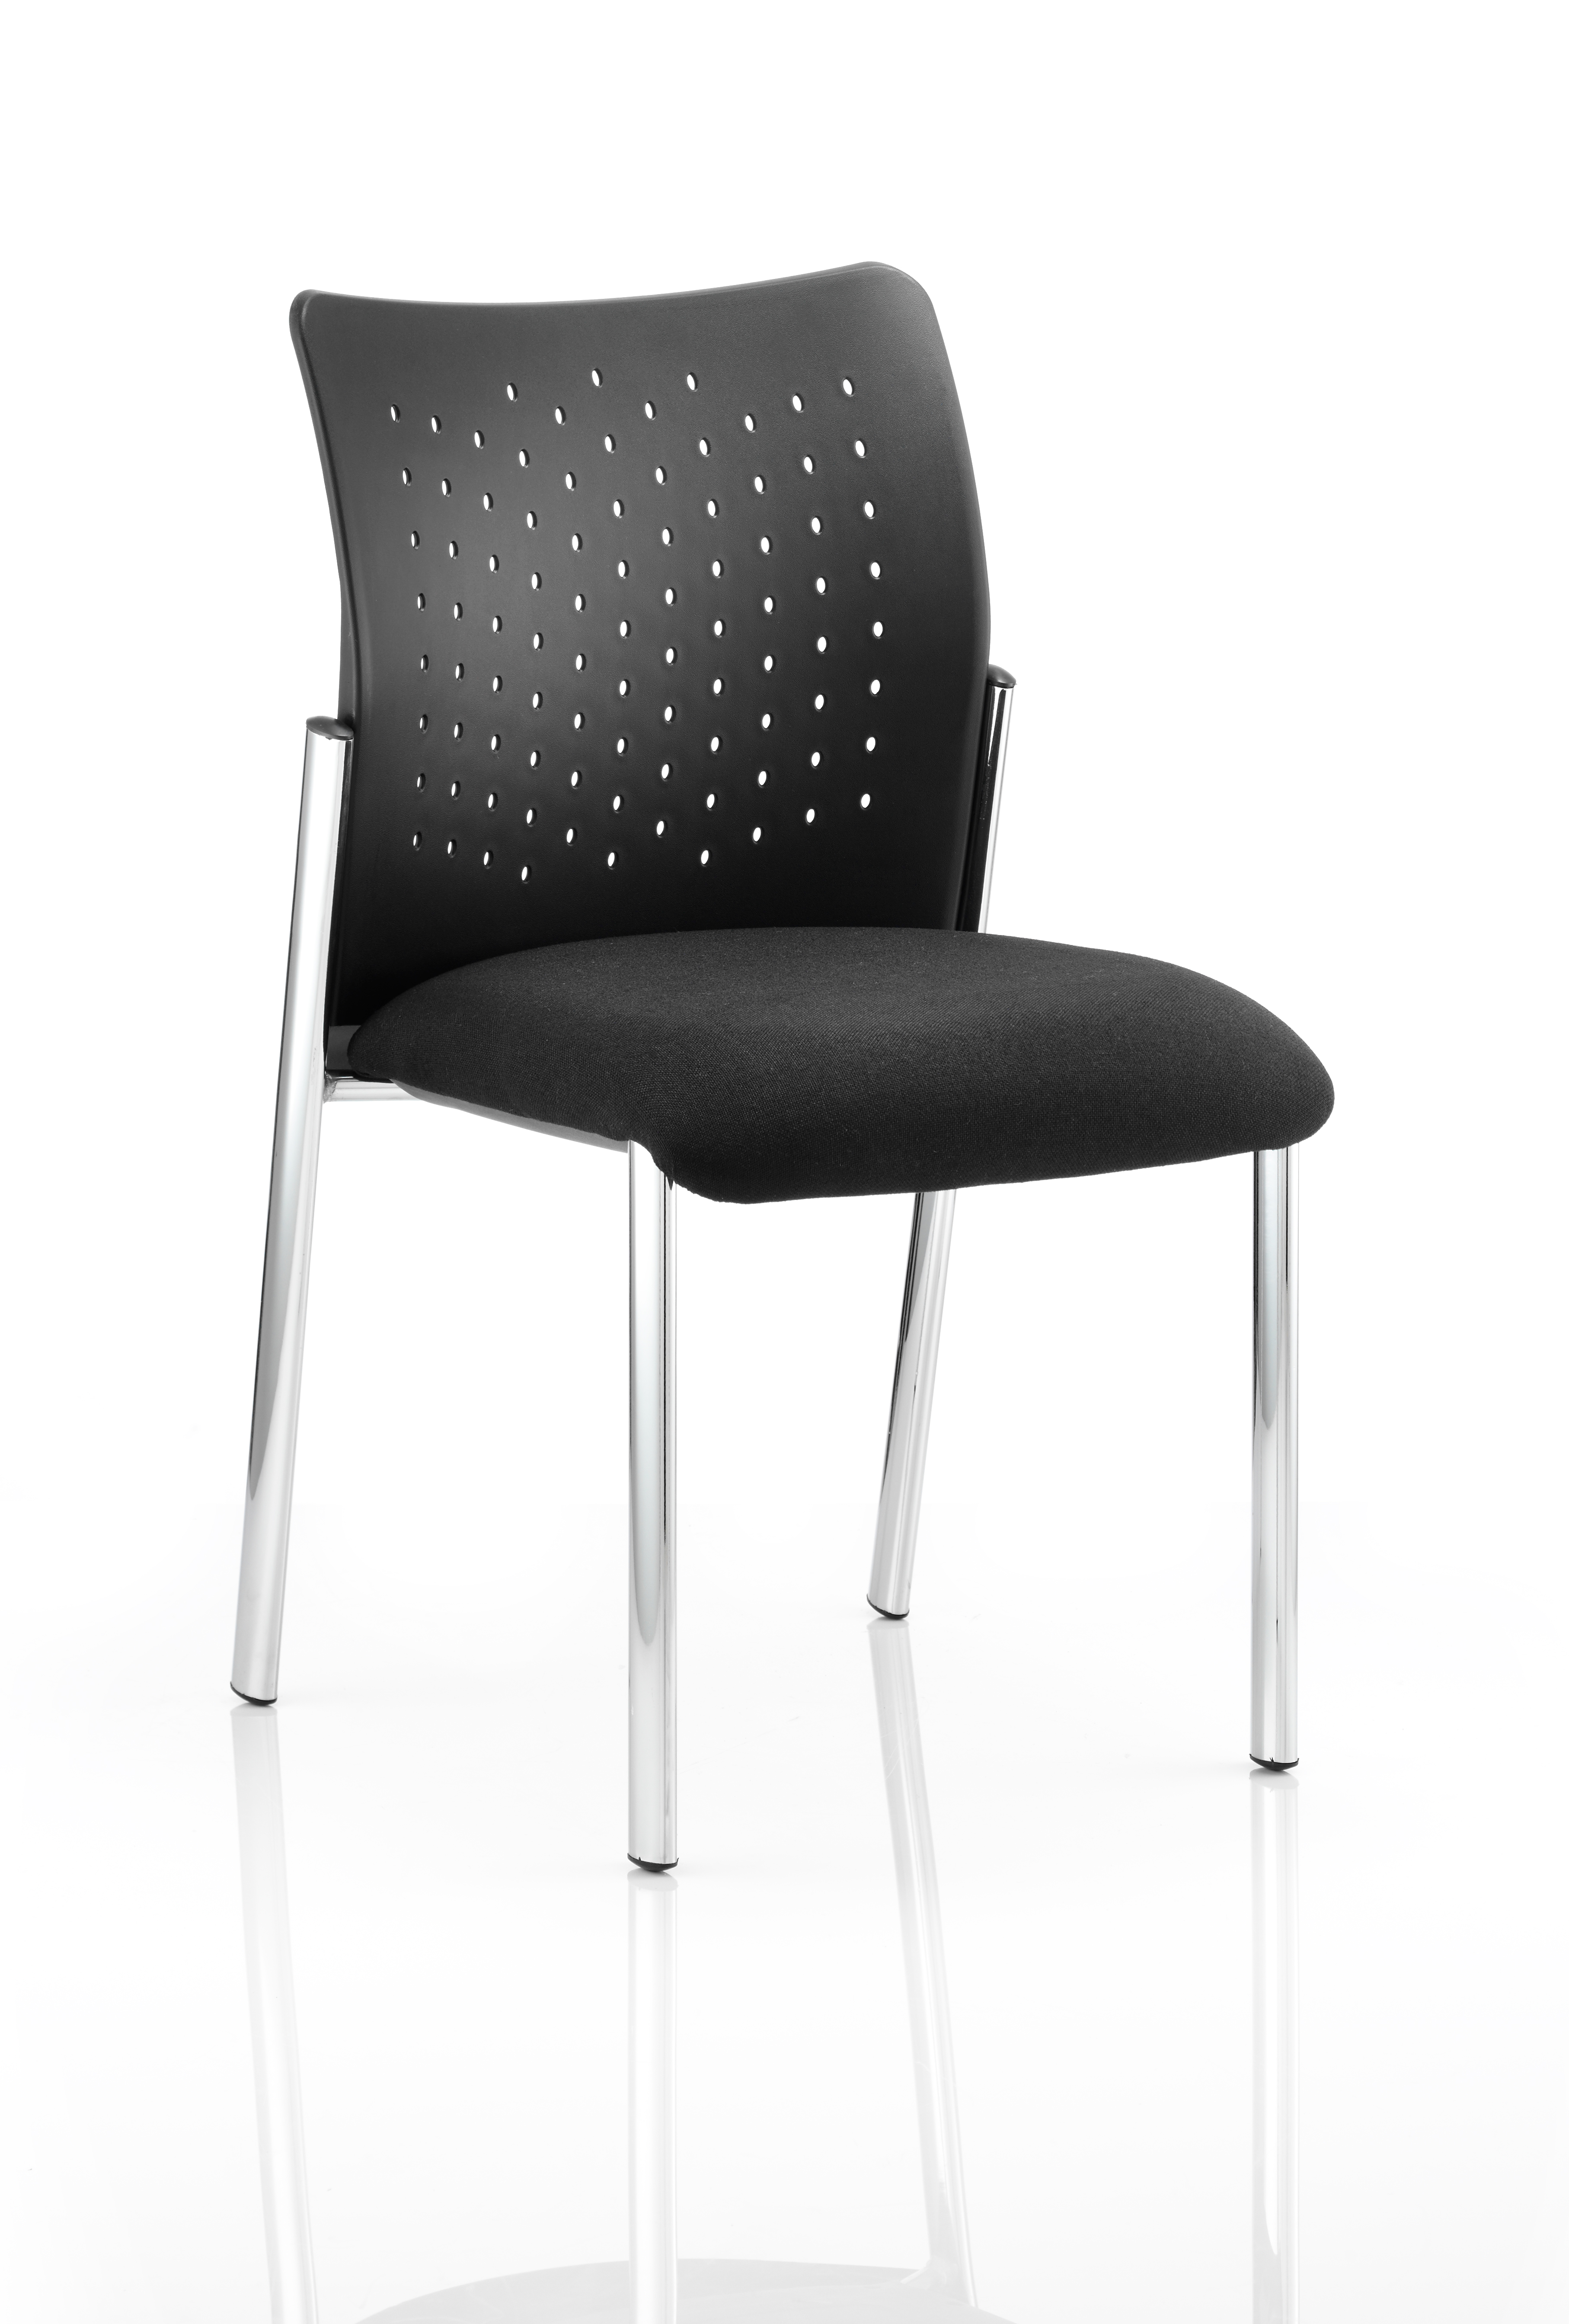 Reception Chairs Academy Visitor Chair Black Without Arms BR000011